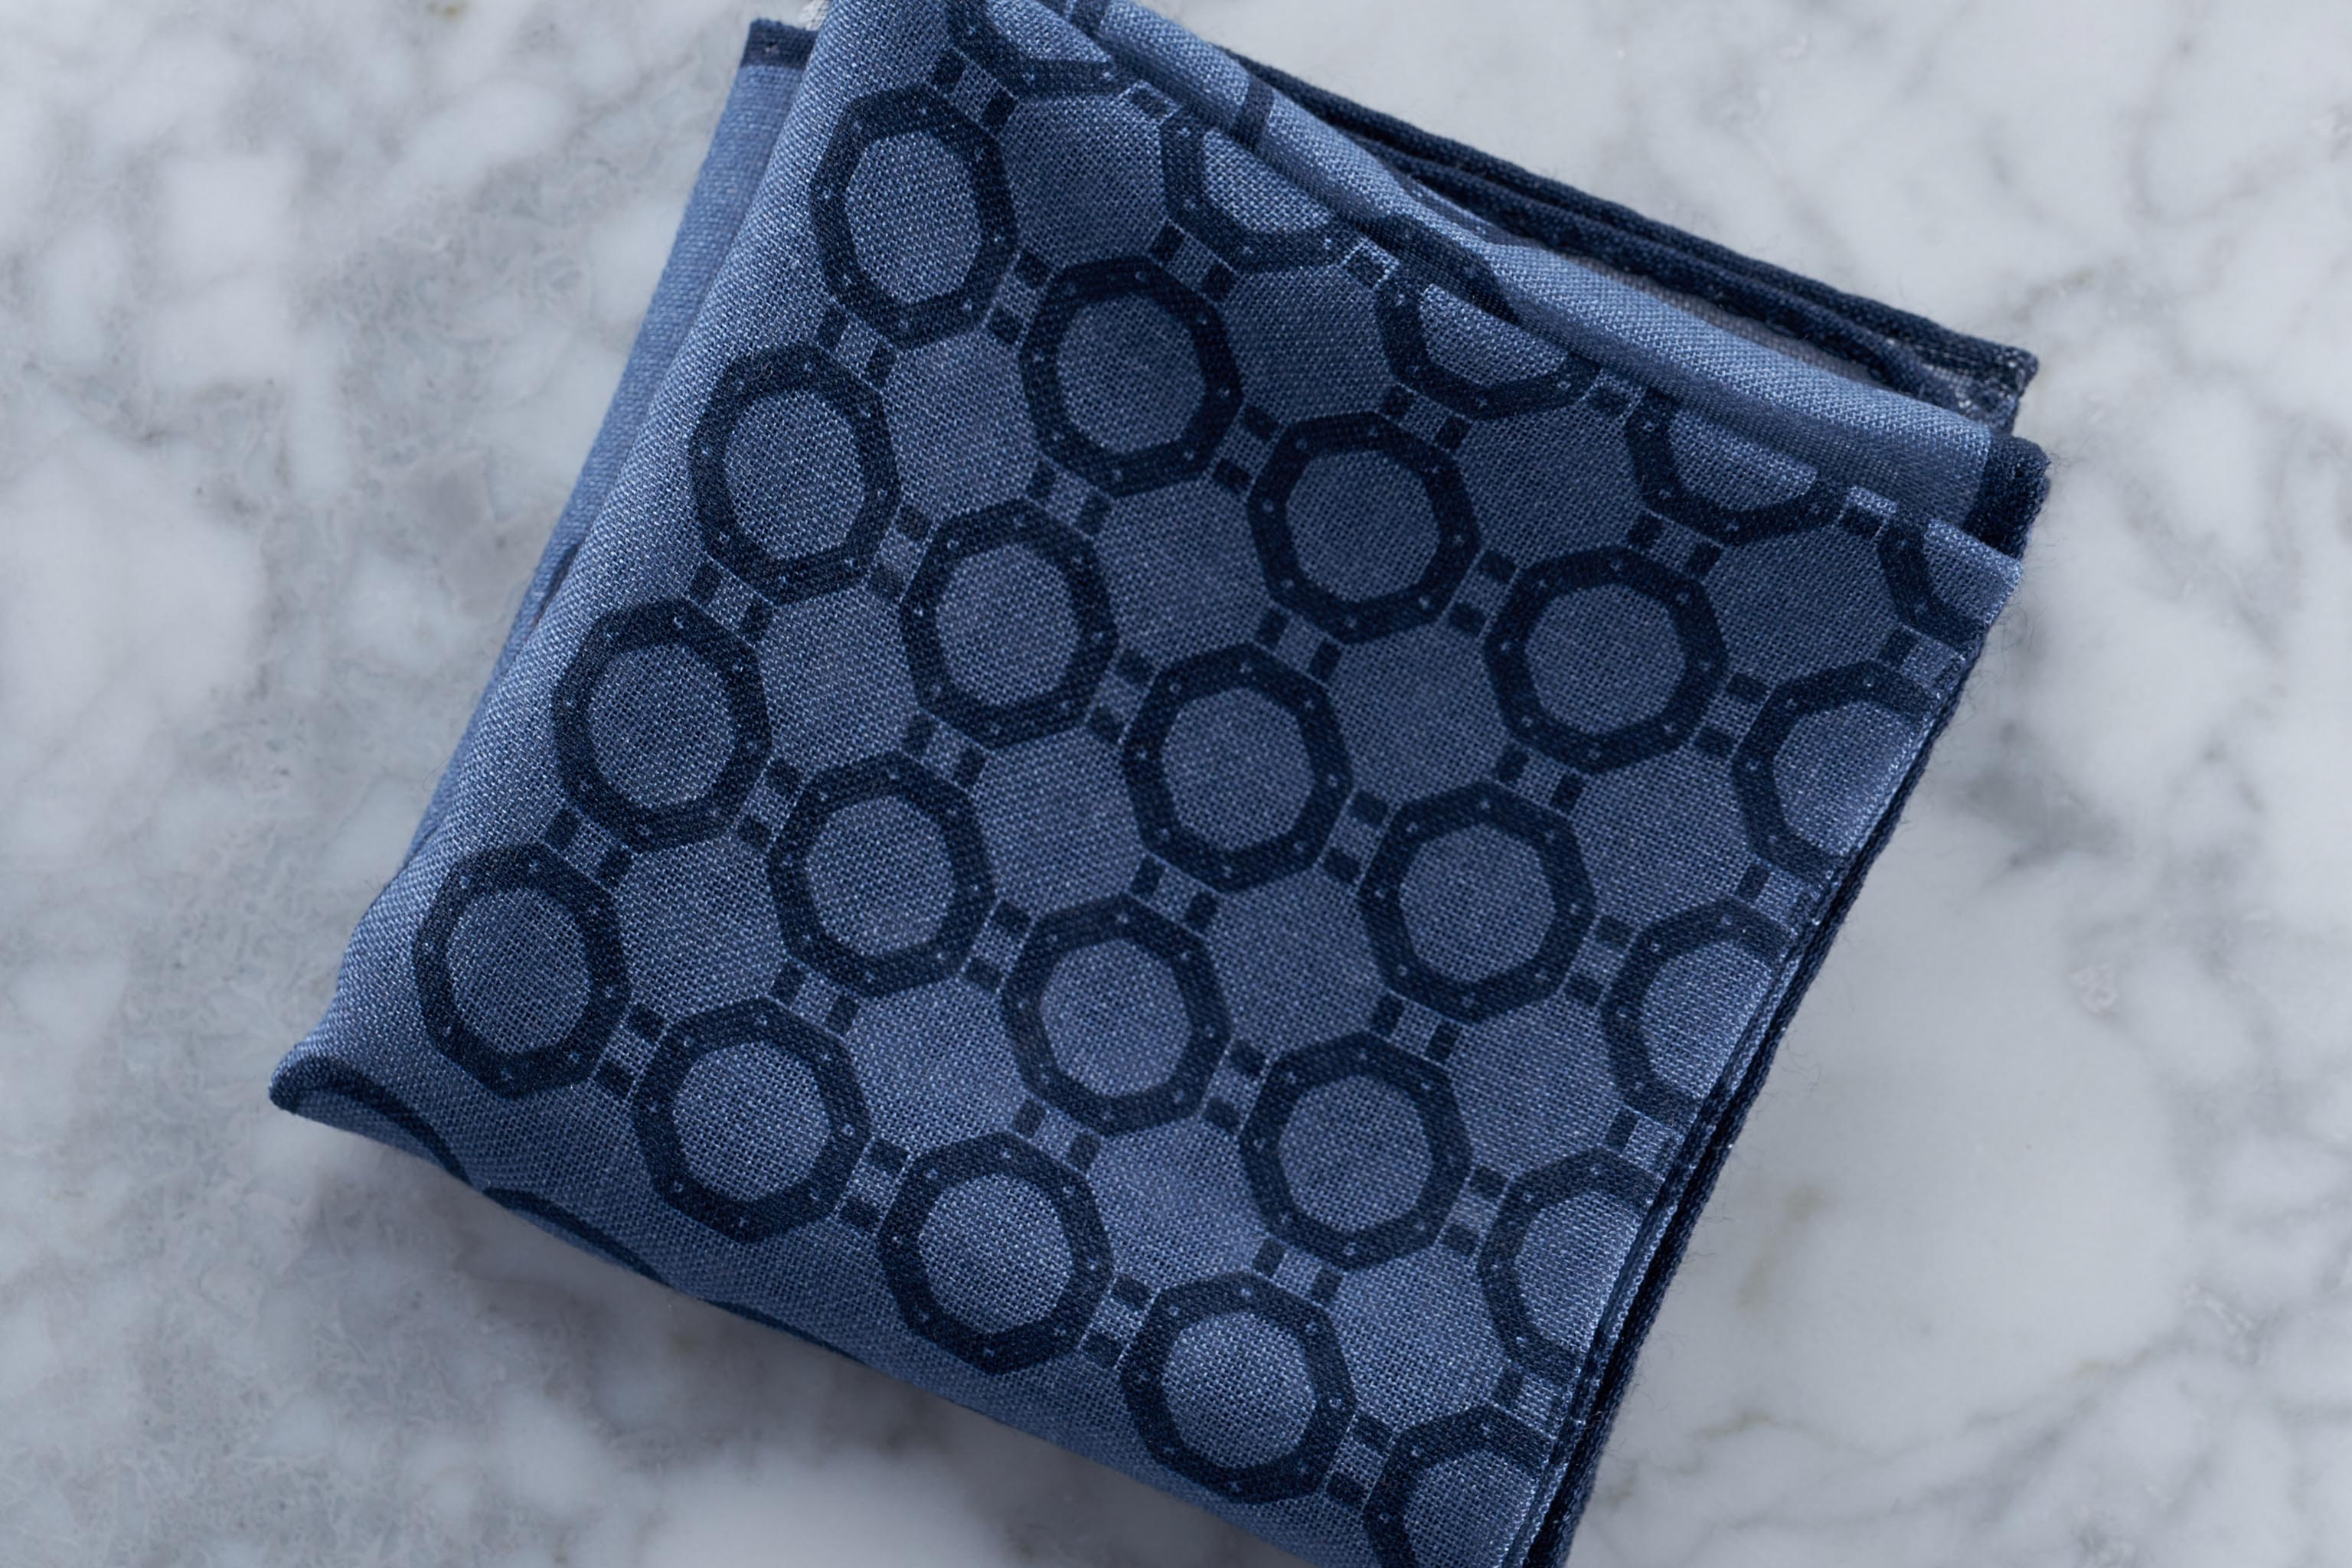 2016: The new edition of the Genta Pocket Square.  Introducing: The Drake's For HODINKEE 2016 Limited Edition Genta Pocket Square Introducing: The Drake's For HODINKEE 2016 Limited Edition Genta Pocket Square b